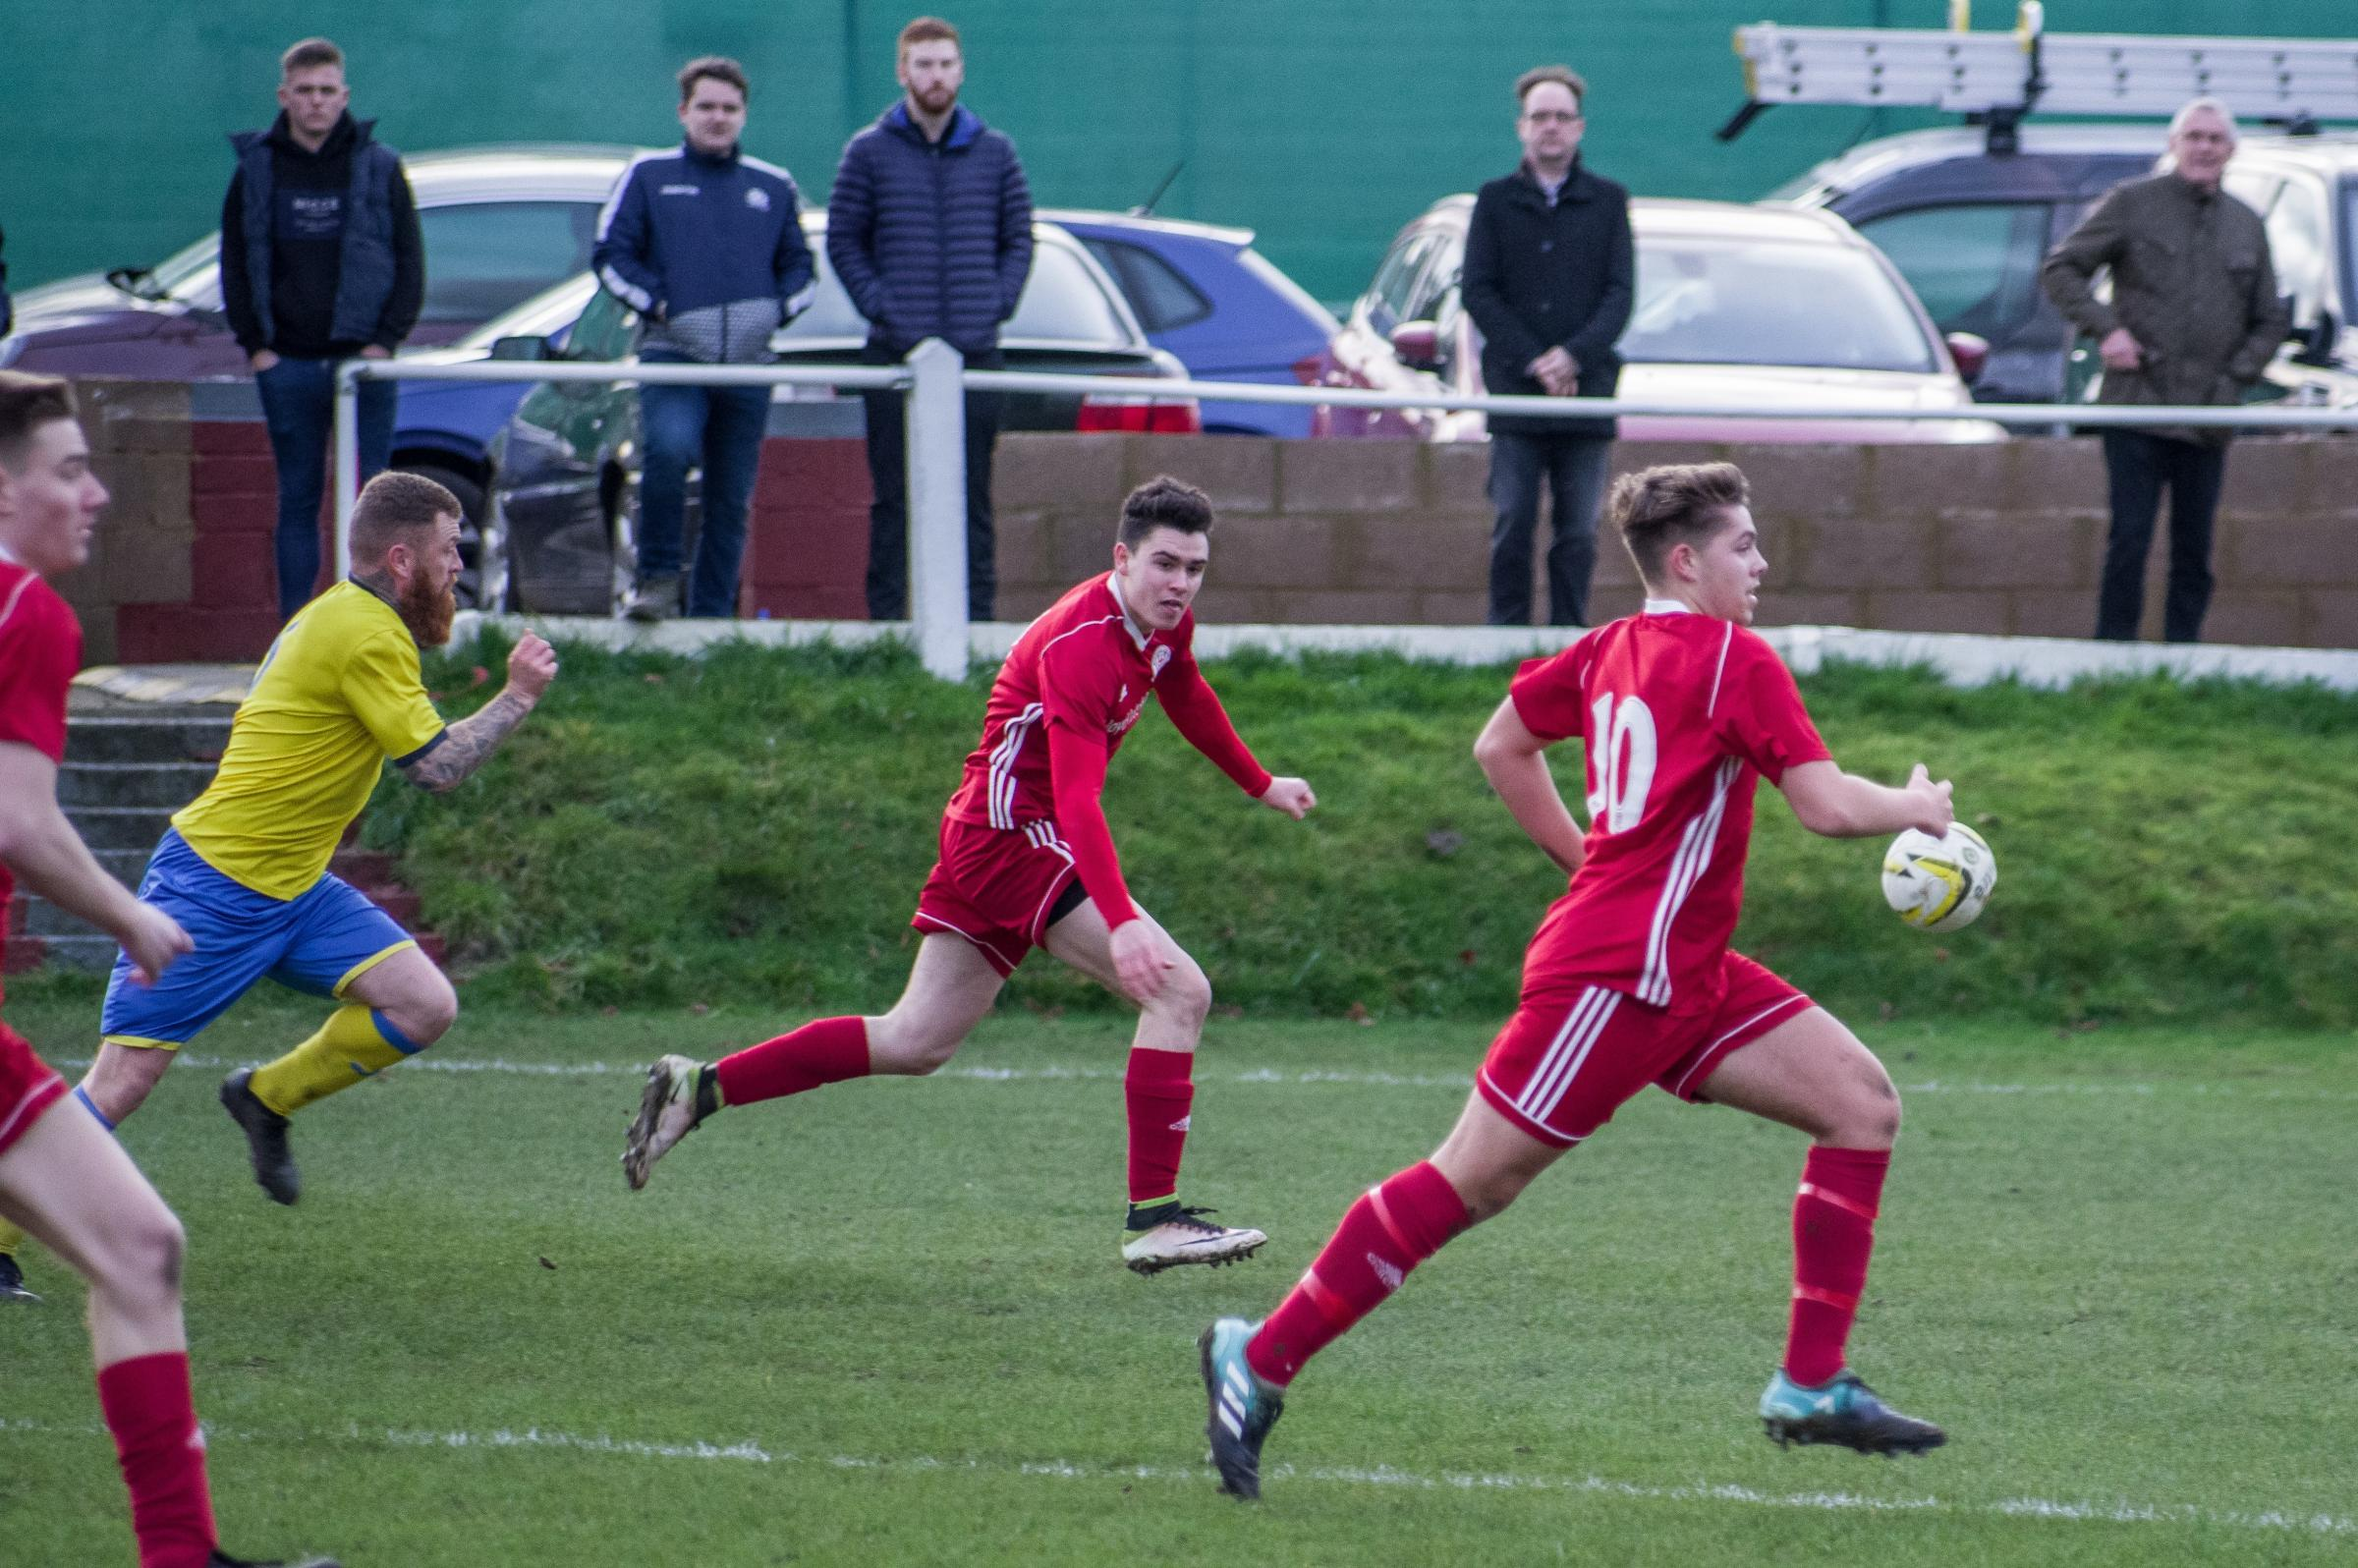 Risborough were edged out by Brimsdown